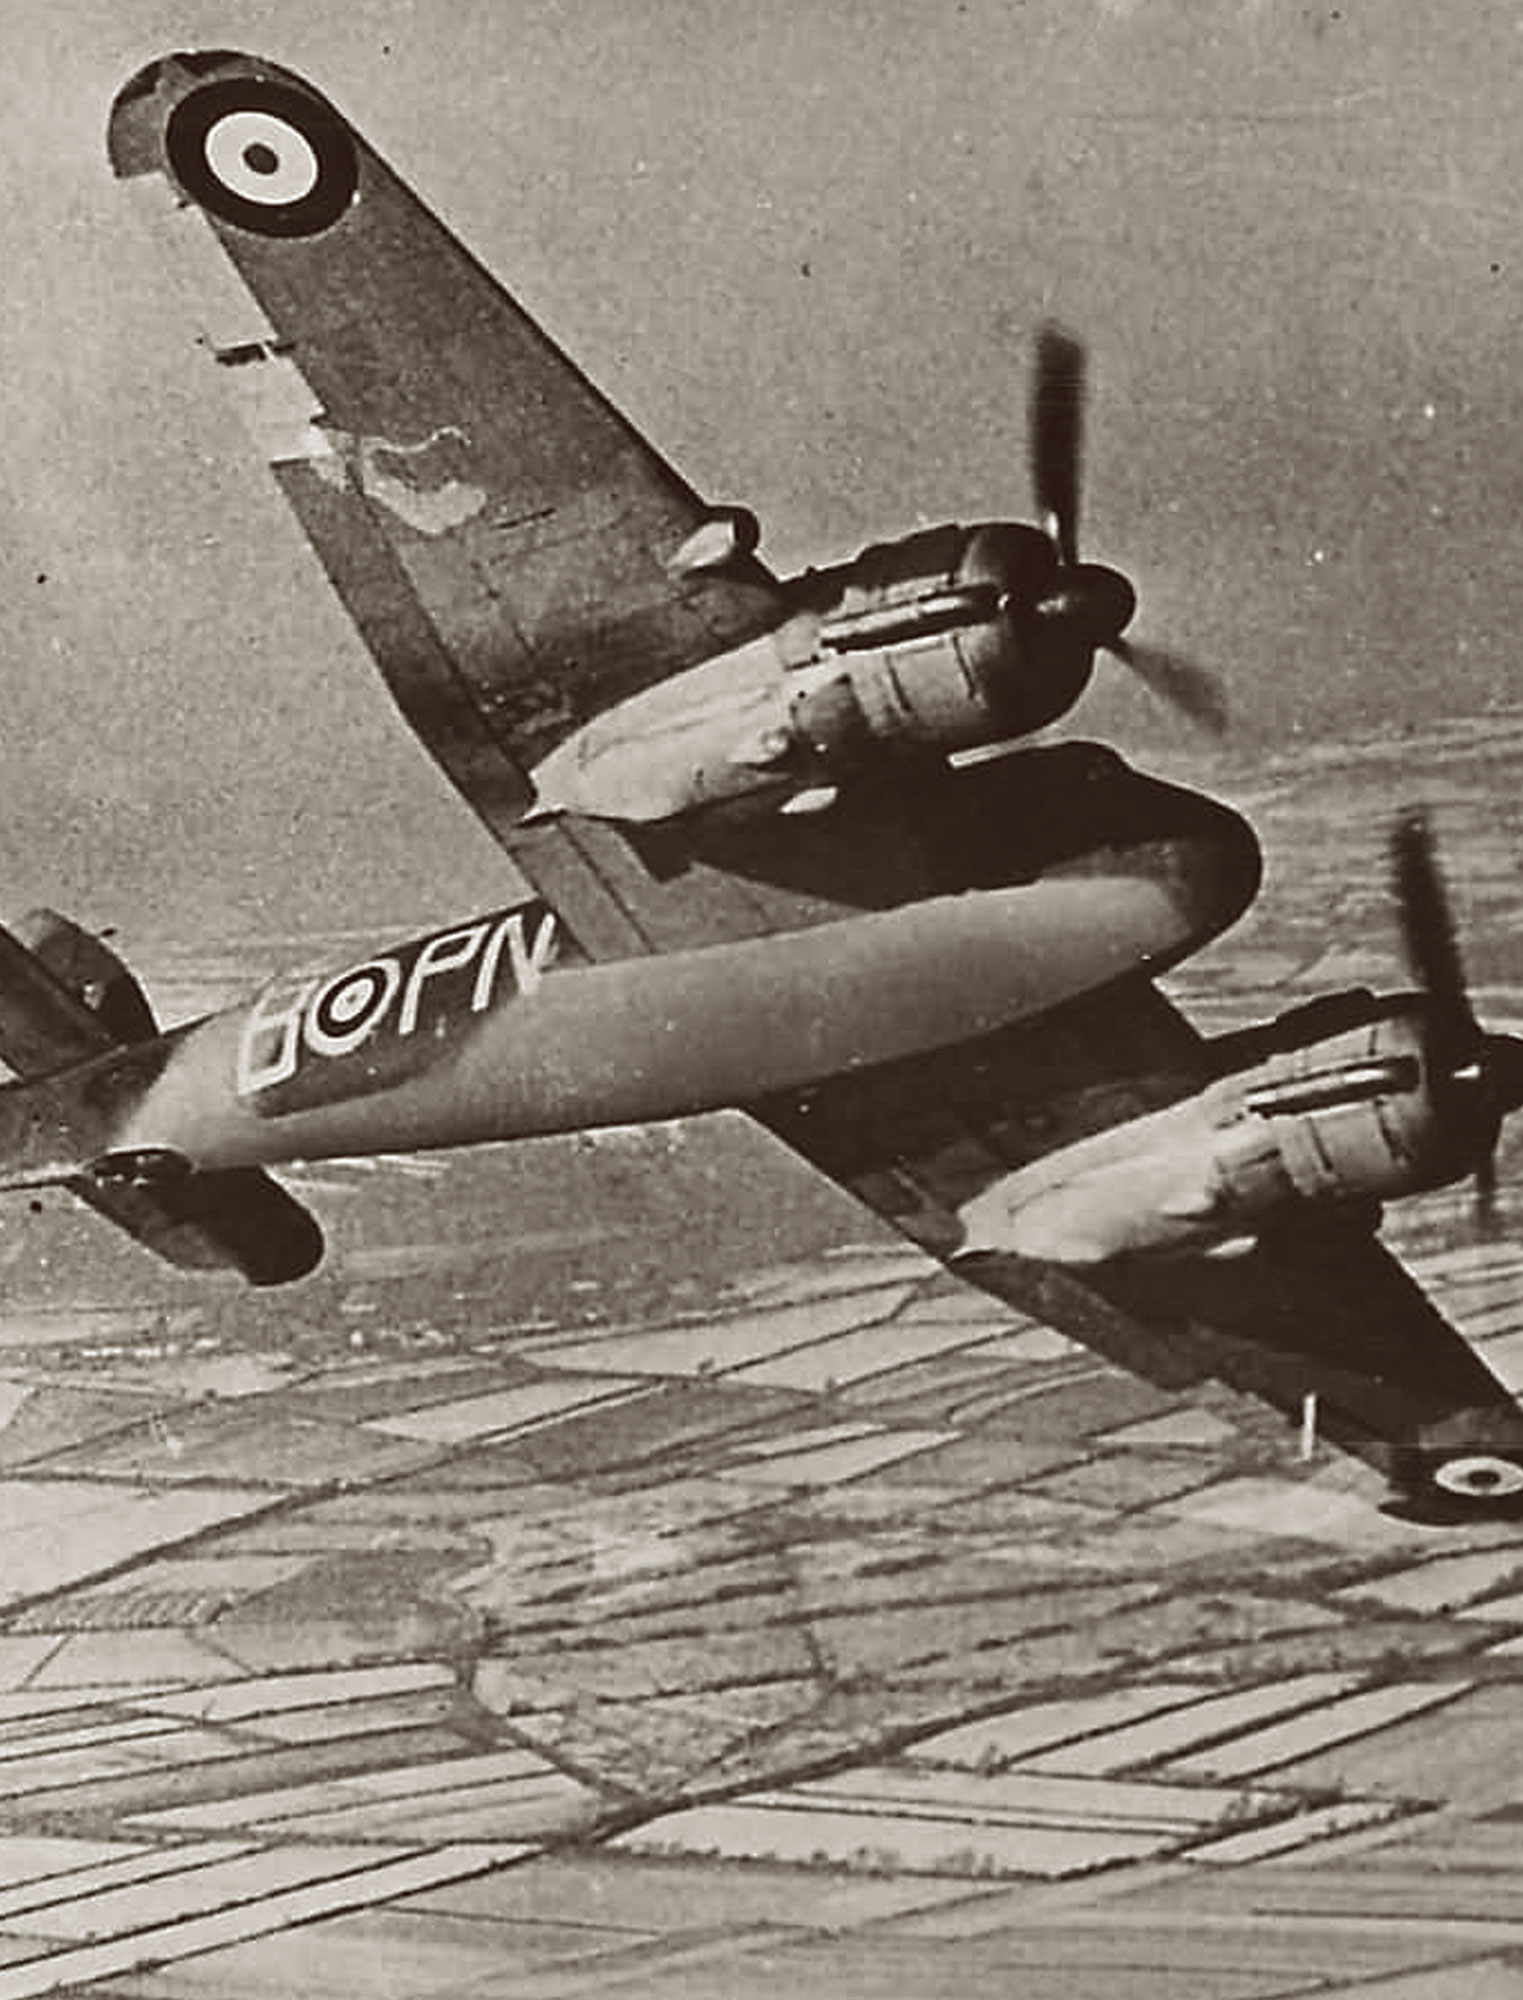 BRISTOL BEAUFIGHTER LEFT & RIGHT BEAM INDICATOR